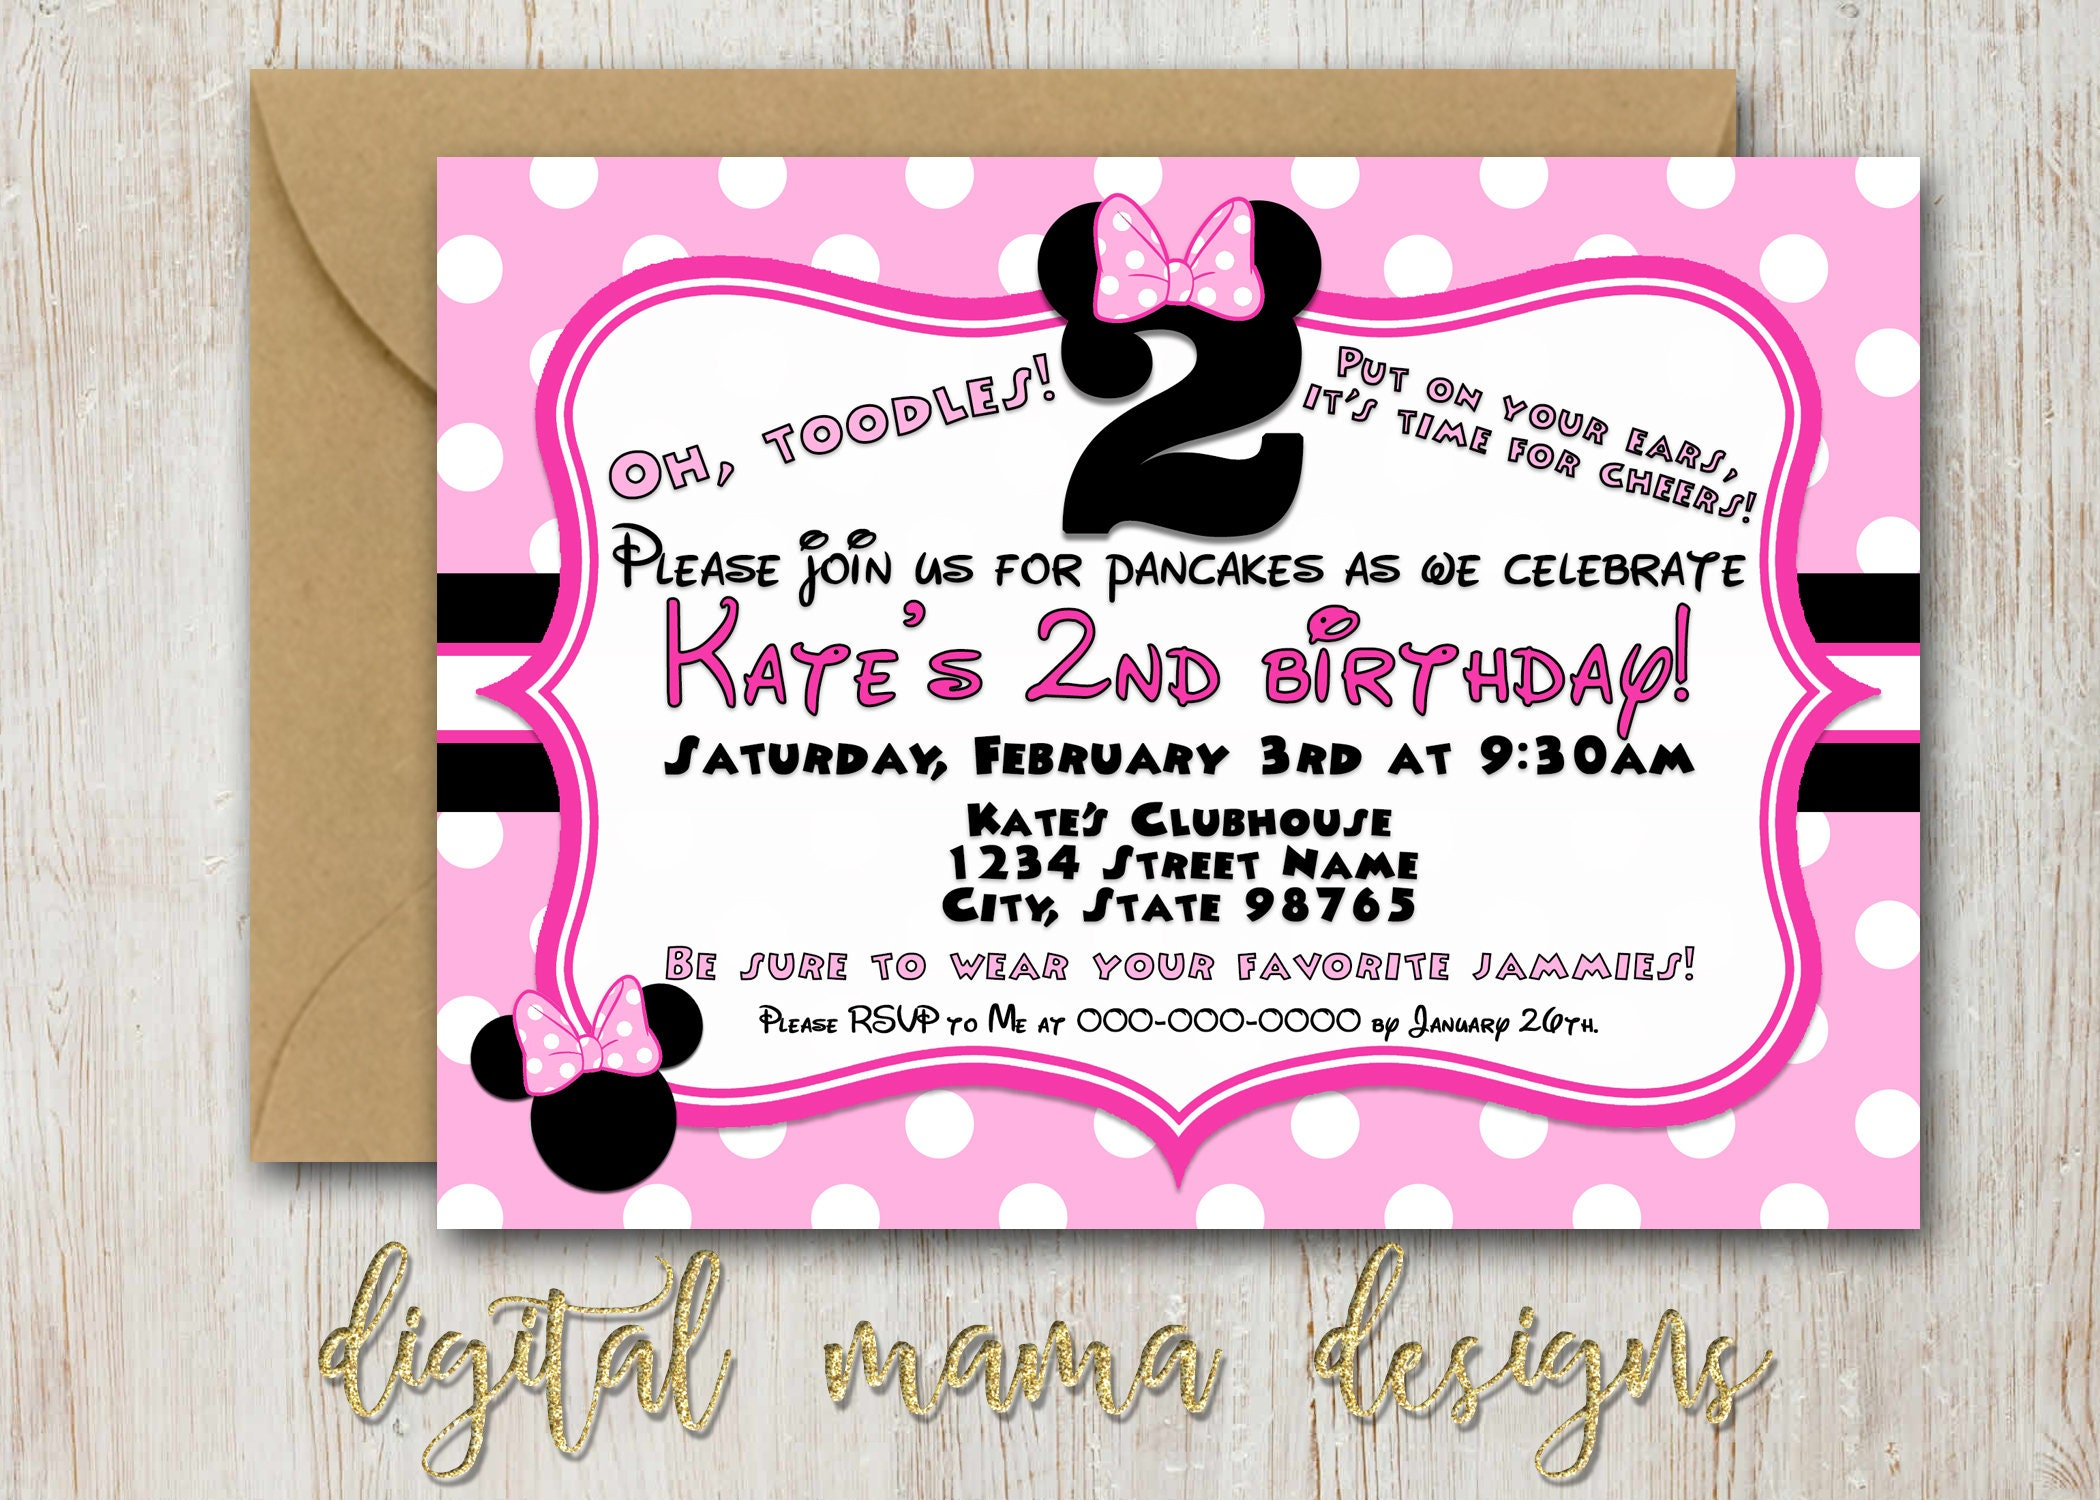 Minnie Mouse Birthday Party Invitation 2 year old Minnie | Etsy